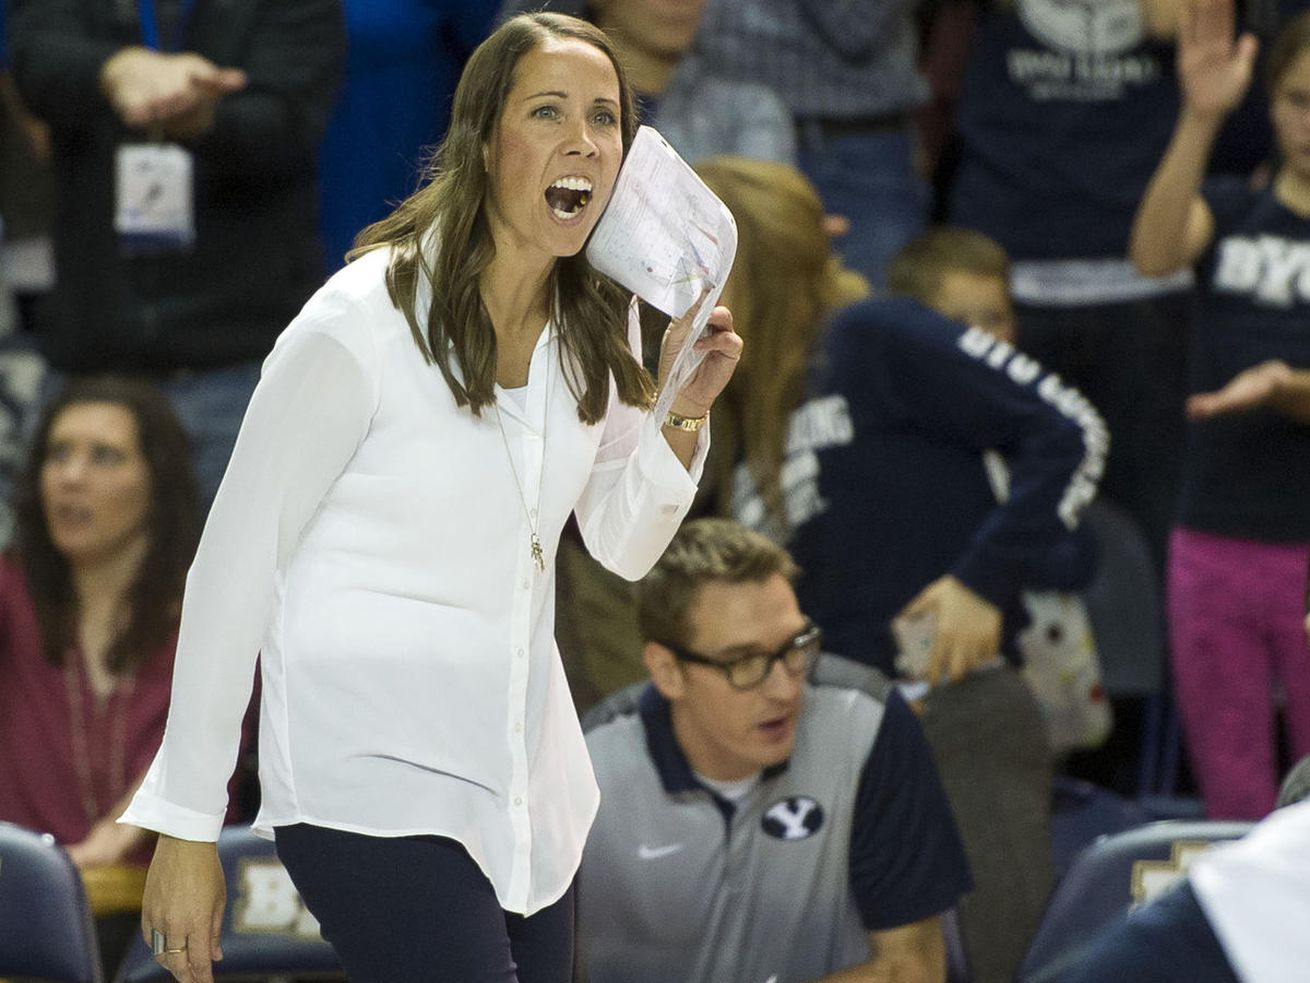 BYU head coach Heather Olmstead cheers on her team during an NCAA volleyball playoff game against UNLV in Provo on Saturday, Dec. 3, 2016. BYU swept UNLV 3-0 to advance to the Sweet 16. BYU earned a No. 16 seed in the 2020 tournament, which will be contested in the spring of 2021 due to the pandemic.